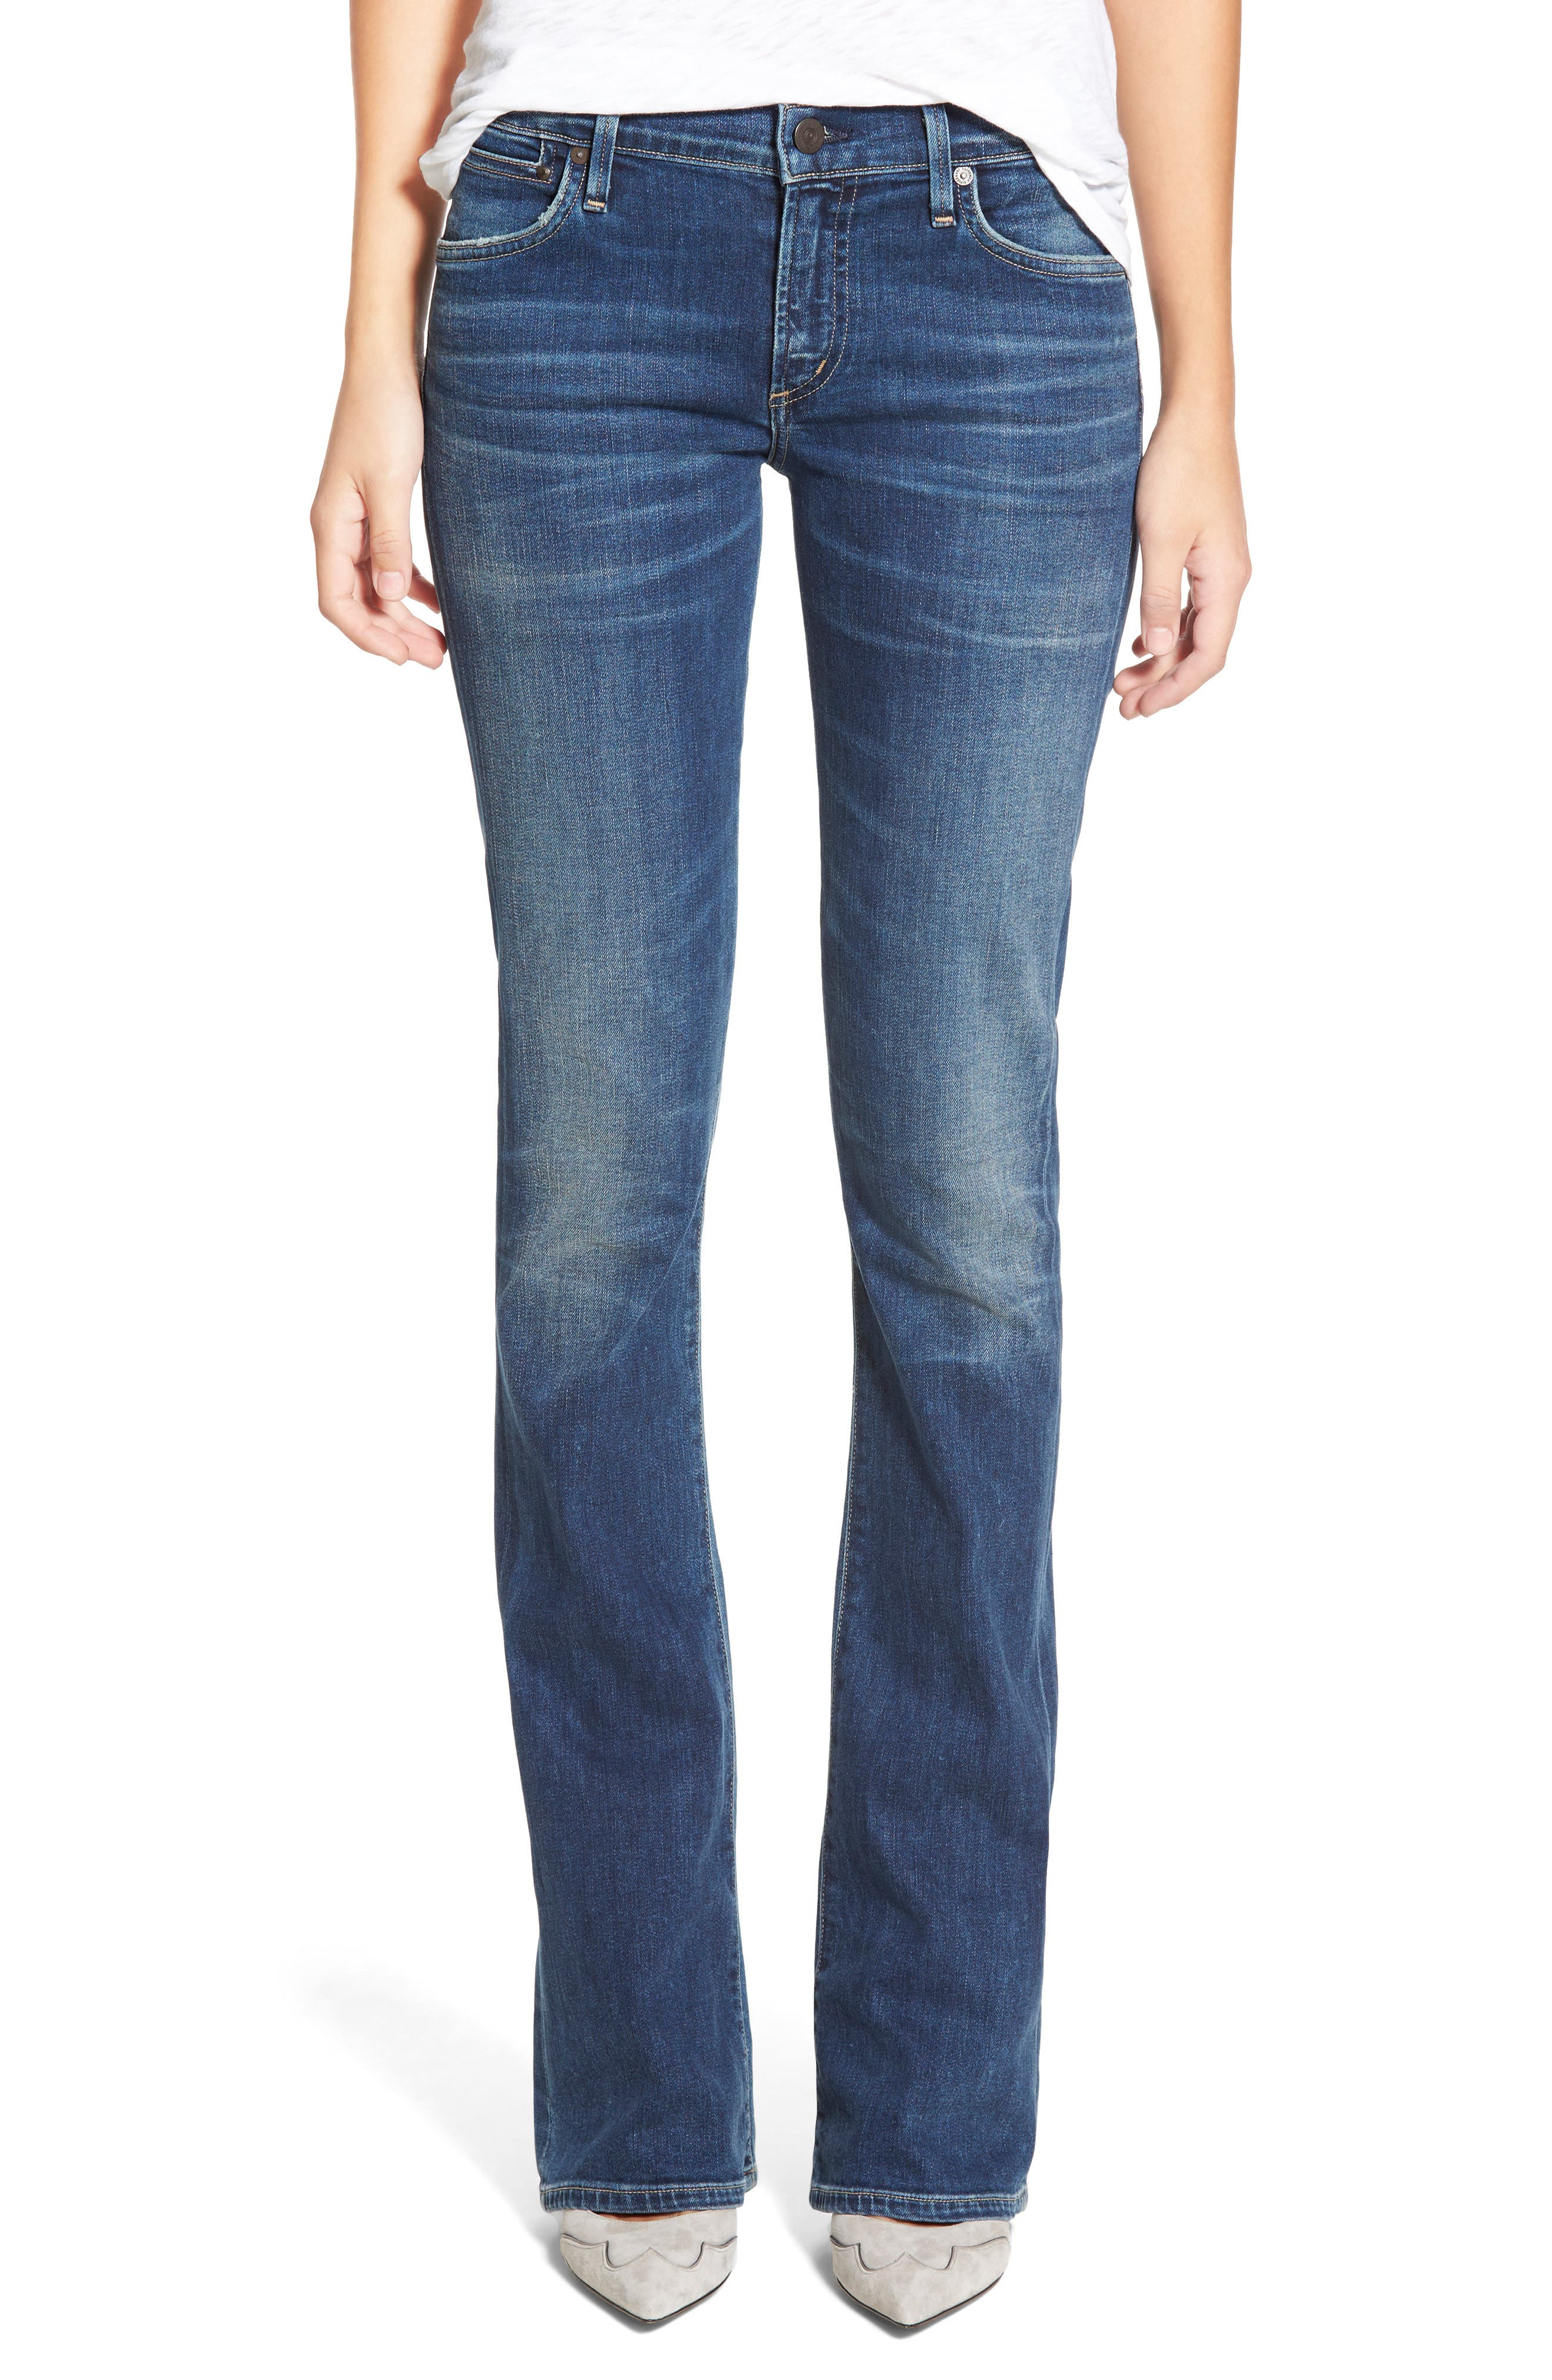 CITIZENS OF HUMANITY, 'Emannuelle' Slim BootcutJeans, Main thumbnail 1, color, MODERN LOVE